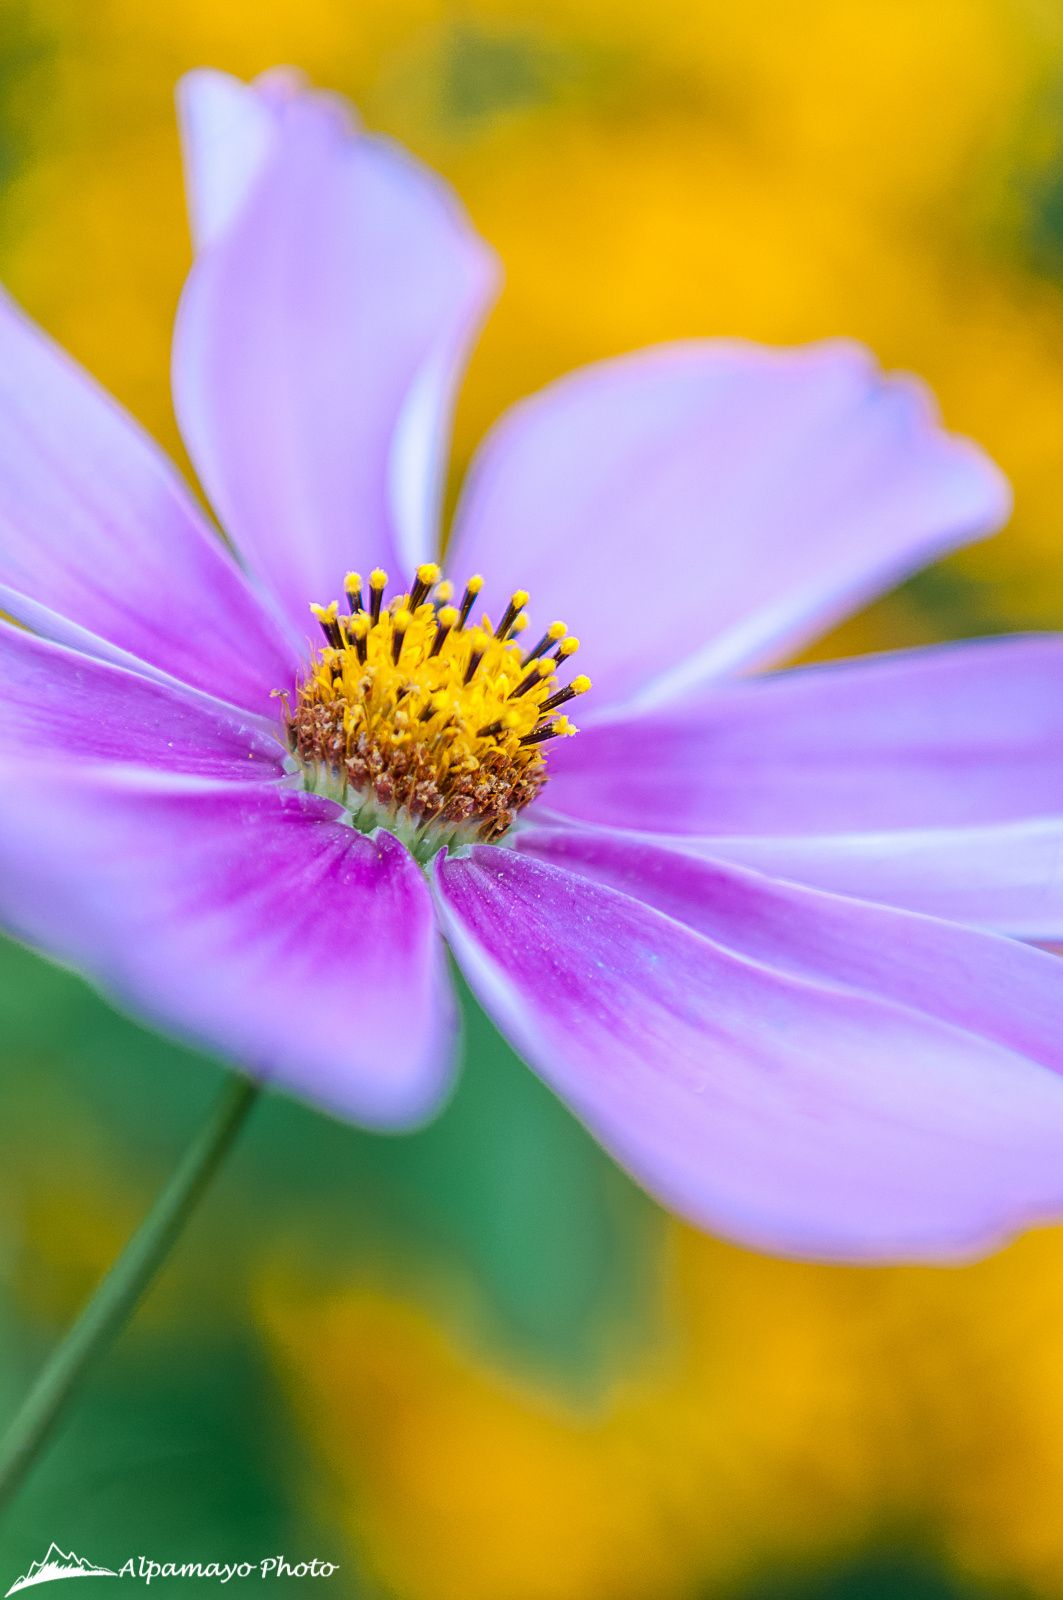 Cosmos flower by alpamayophoto on 500px my feelings pinterest cosmos cosmos bipinnatus sensation is an annual and perennial plant in the family asteraceae native to scrub and meadow areas in americas izmirmasajfo Gallery